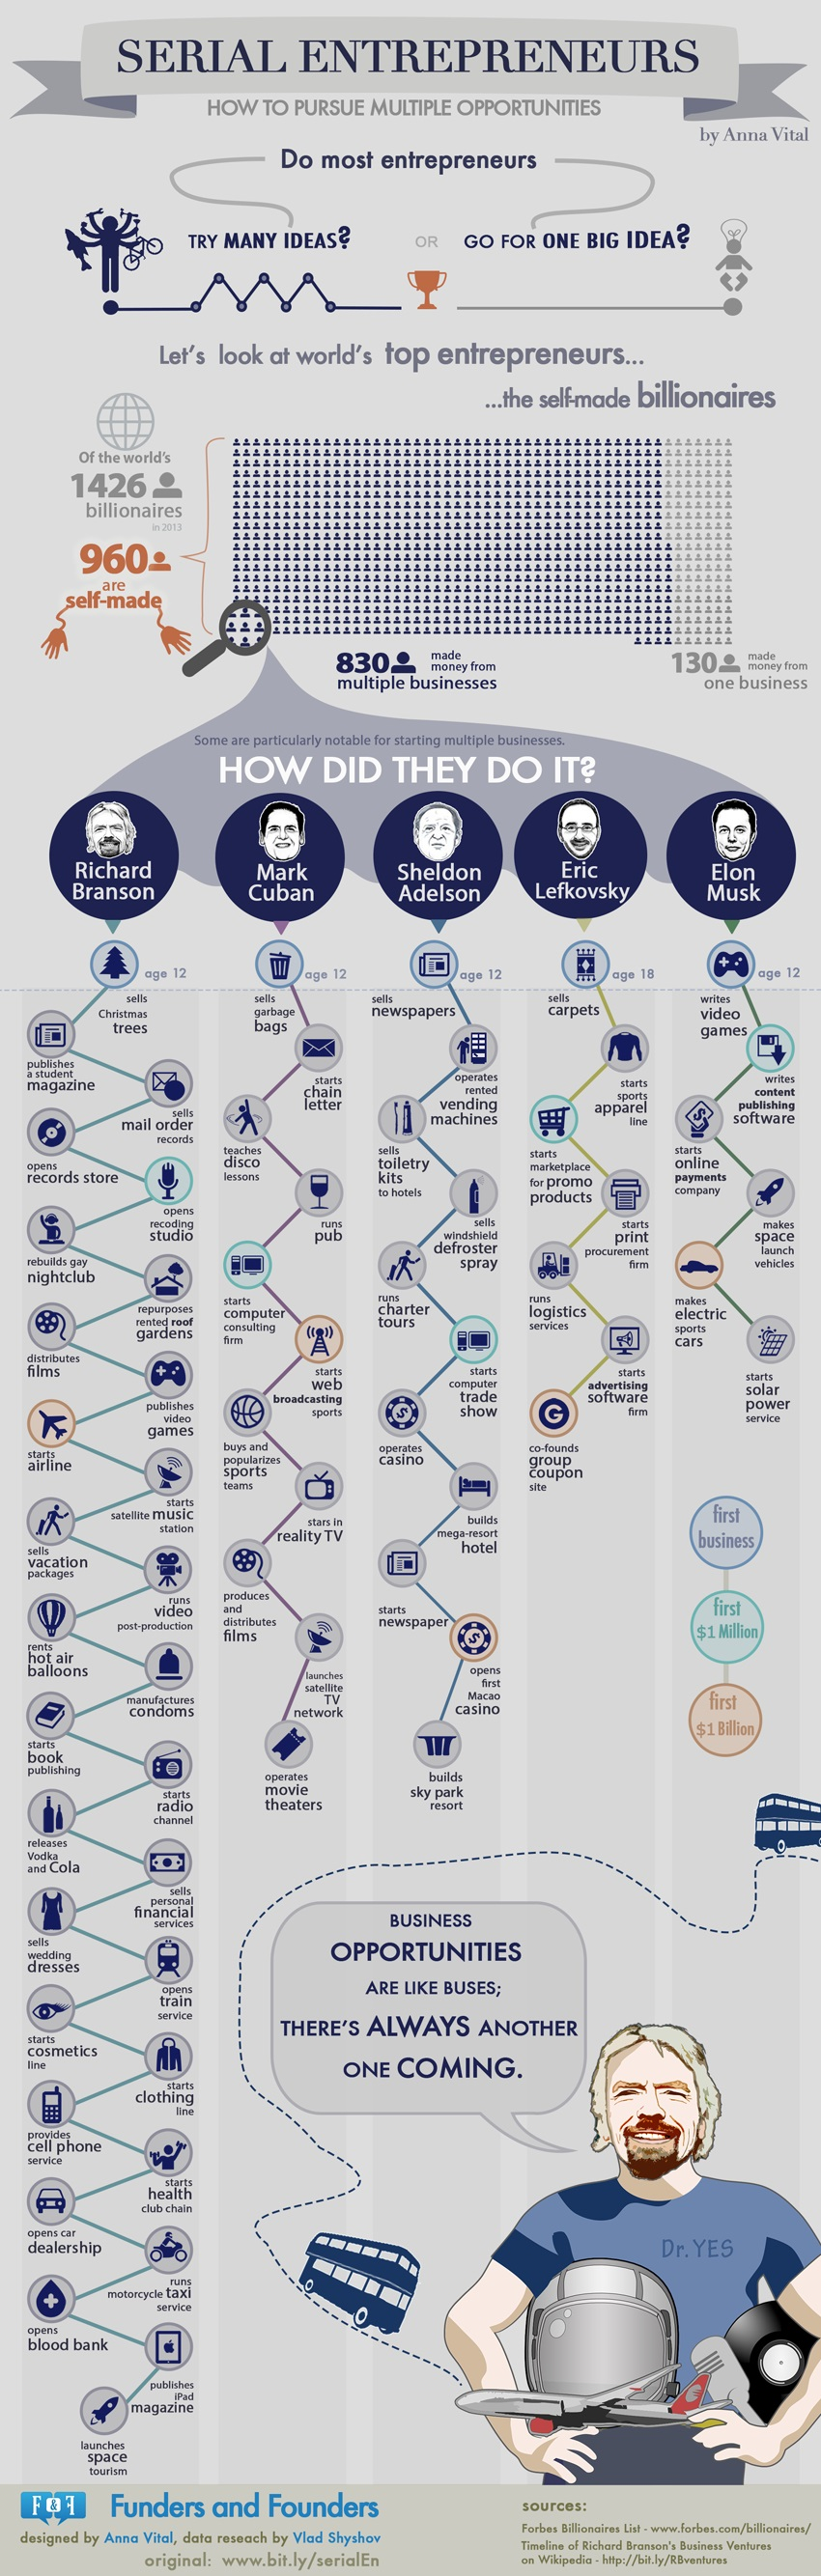 The Path of Serial Entrepreneurs